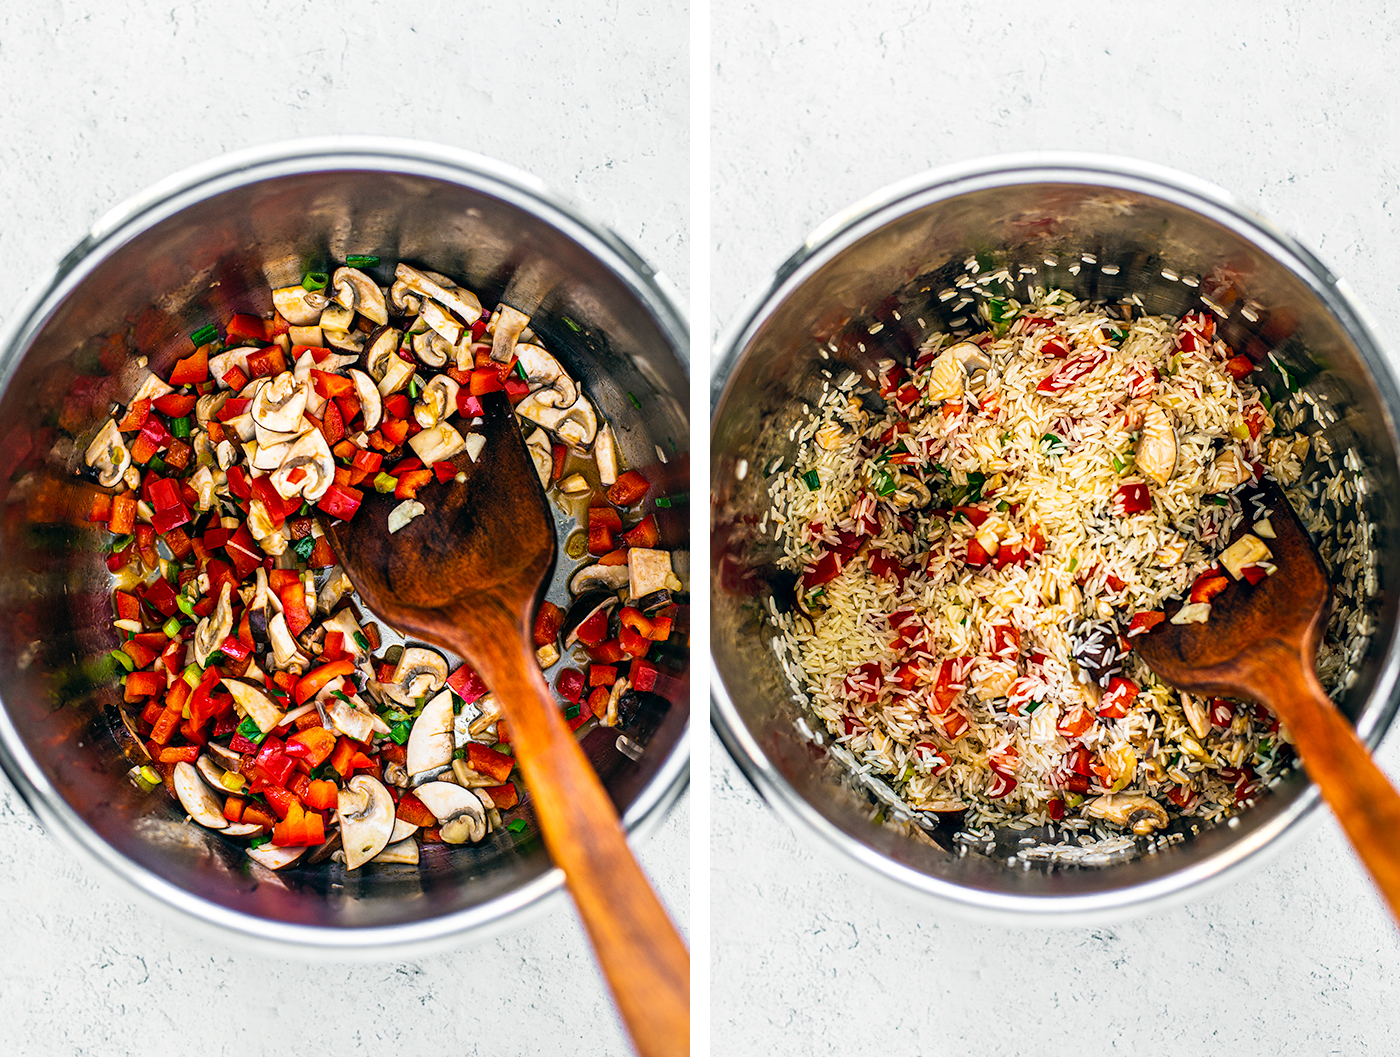 Left: Instant Pot with vegetables in it; Right: Instant Pot with vegetables and rice added.